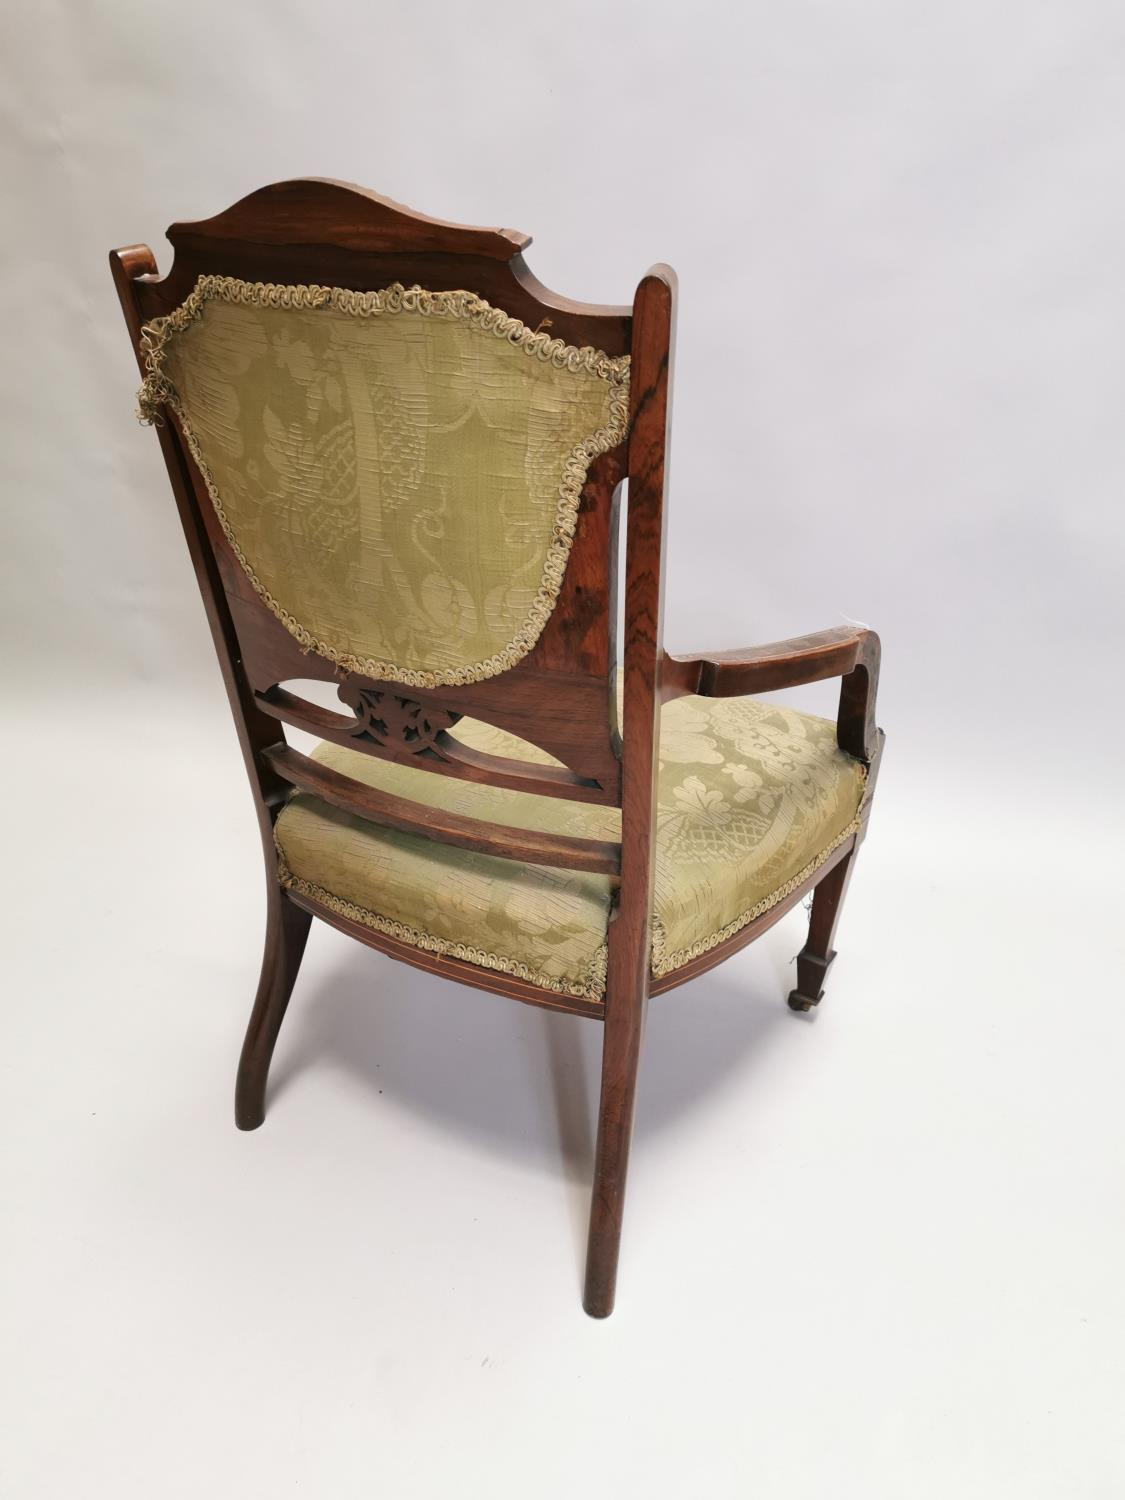 Edwardian inlaid upholstered Ladies armchair - Image 7 of 7